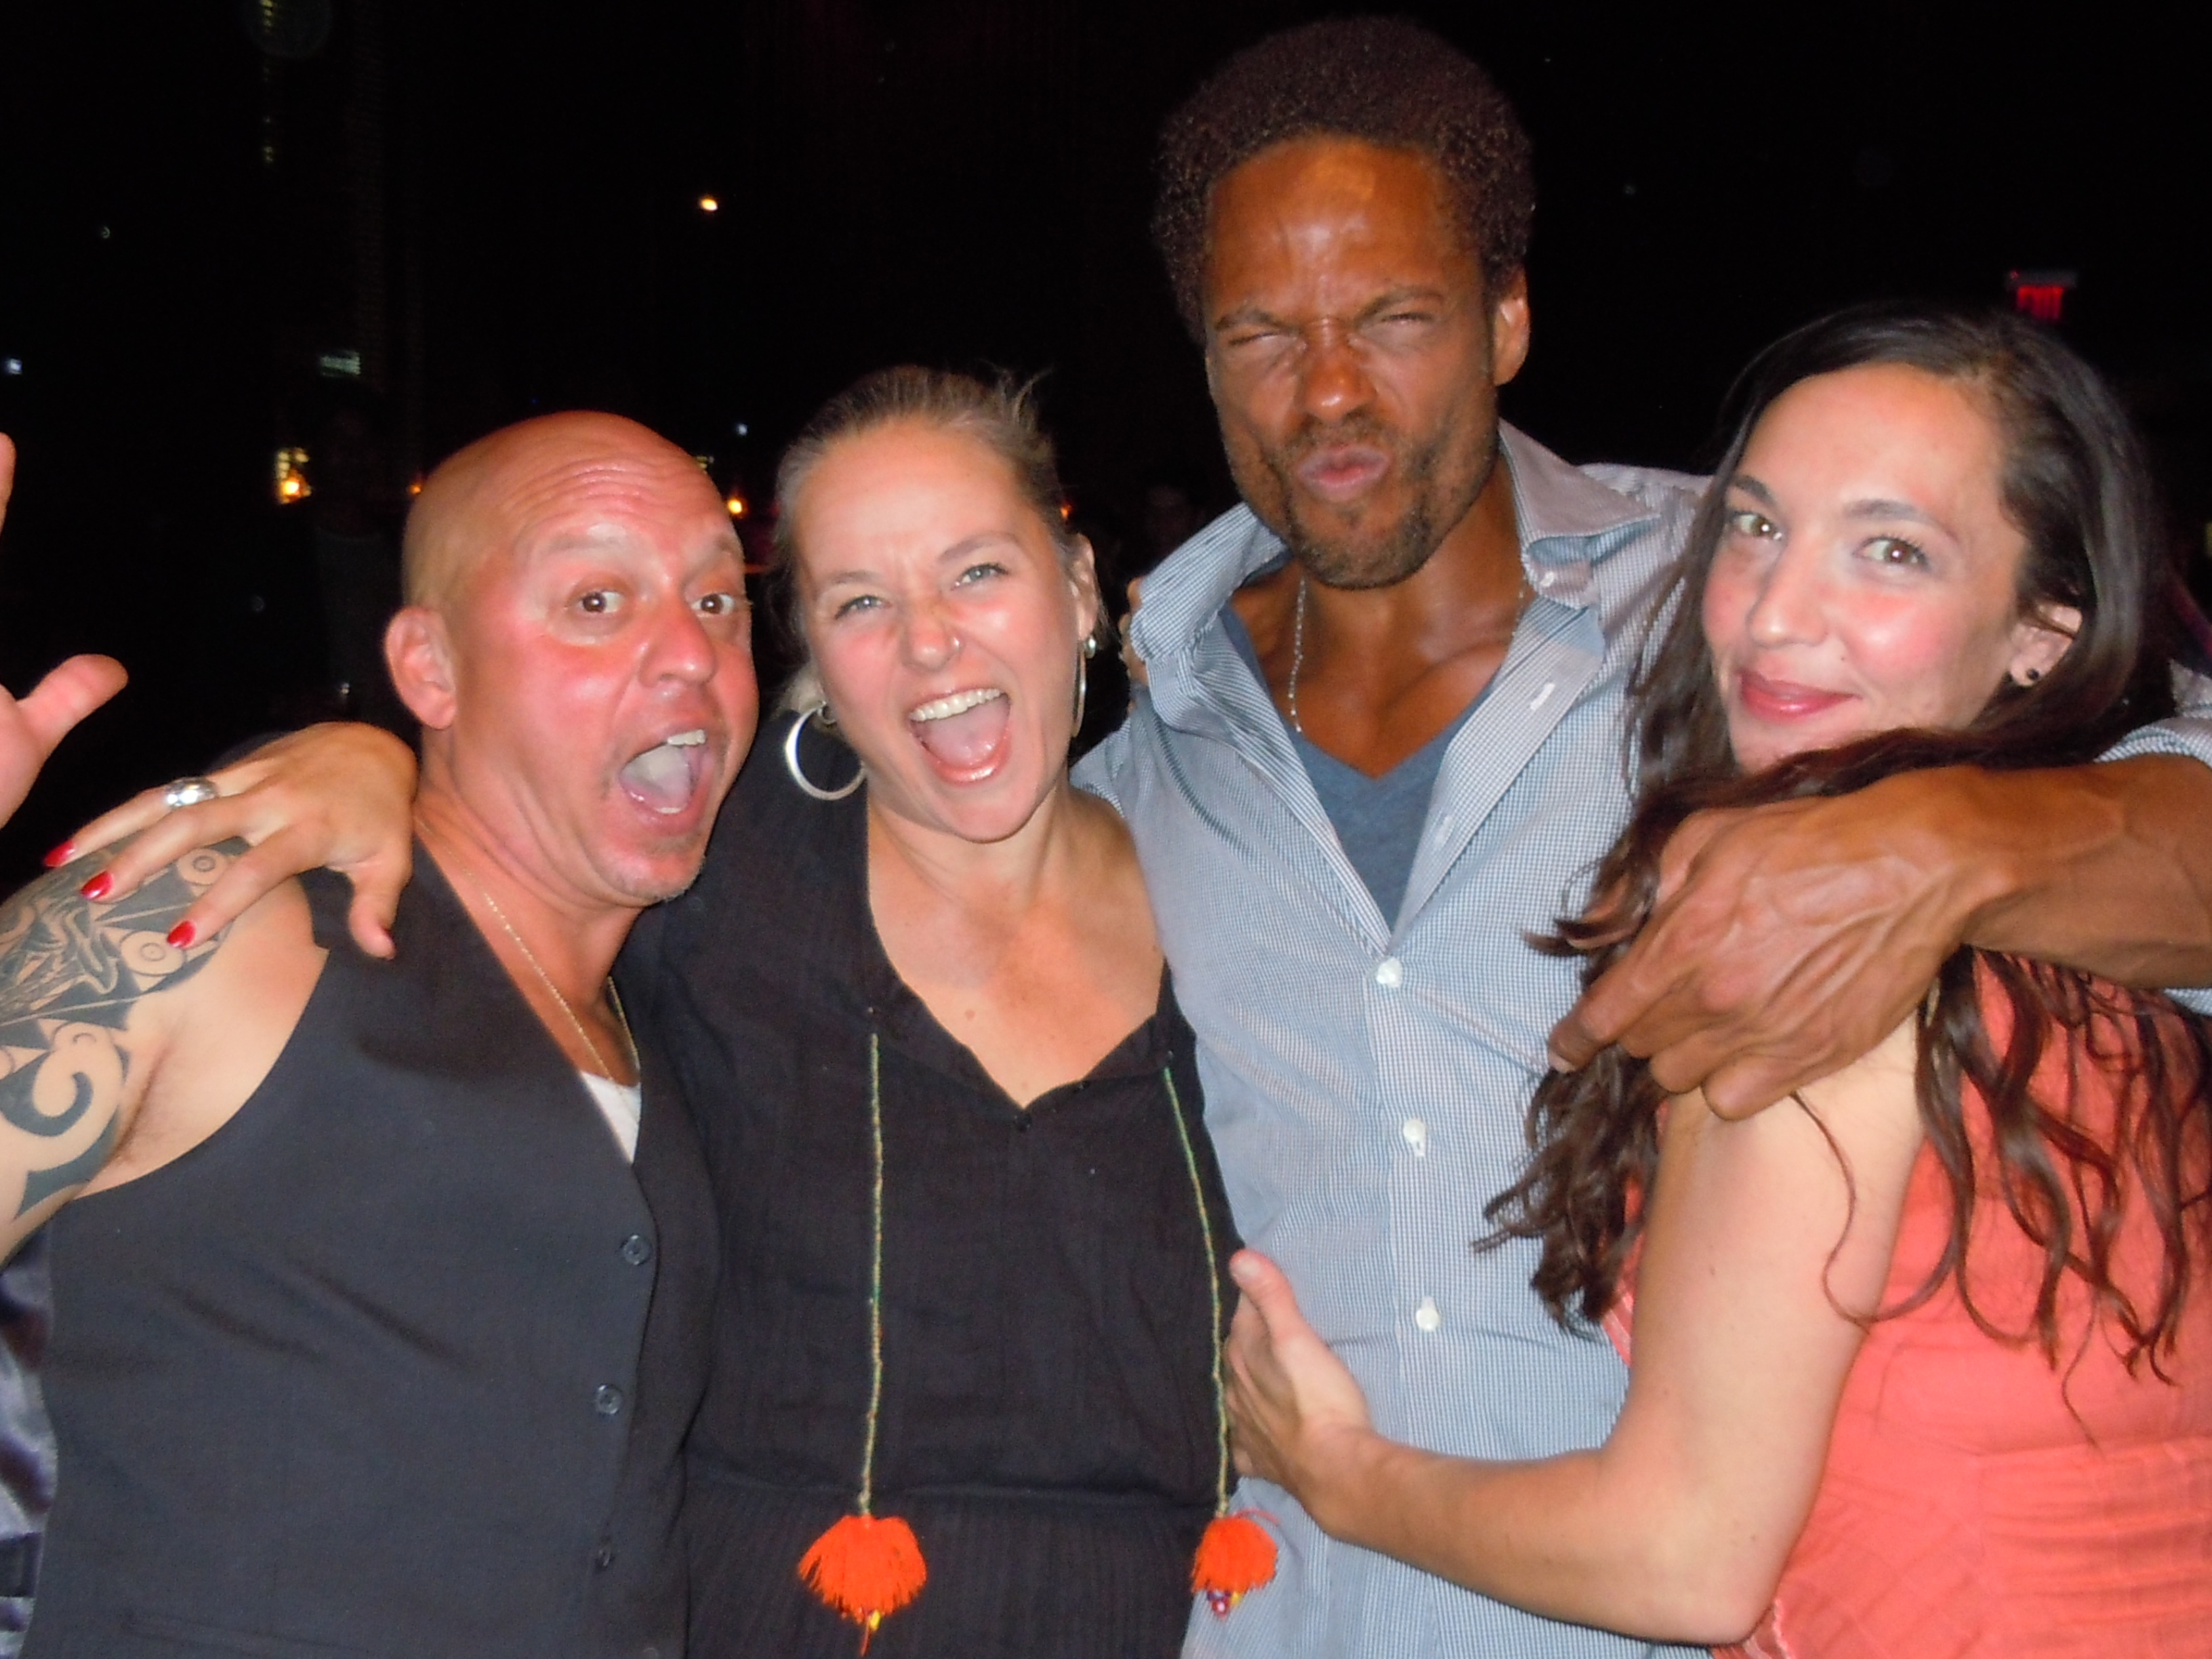 Good times with Gary Dourdan and friends